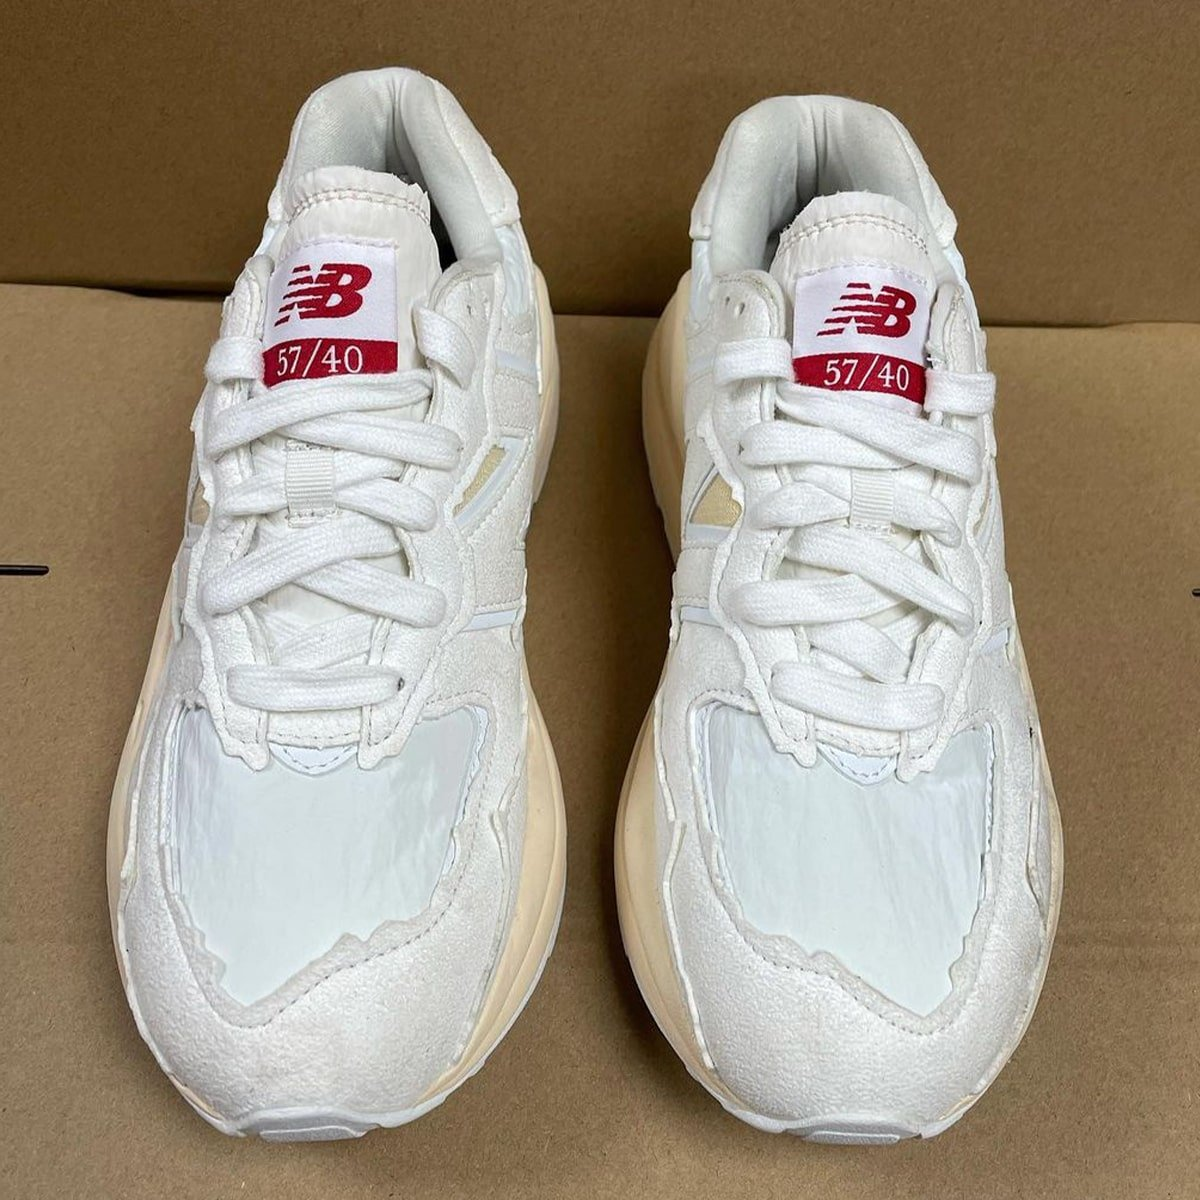 New Balance 57/40 Refined Future Protection Pack Release Date Info